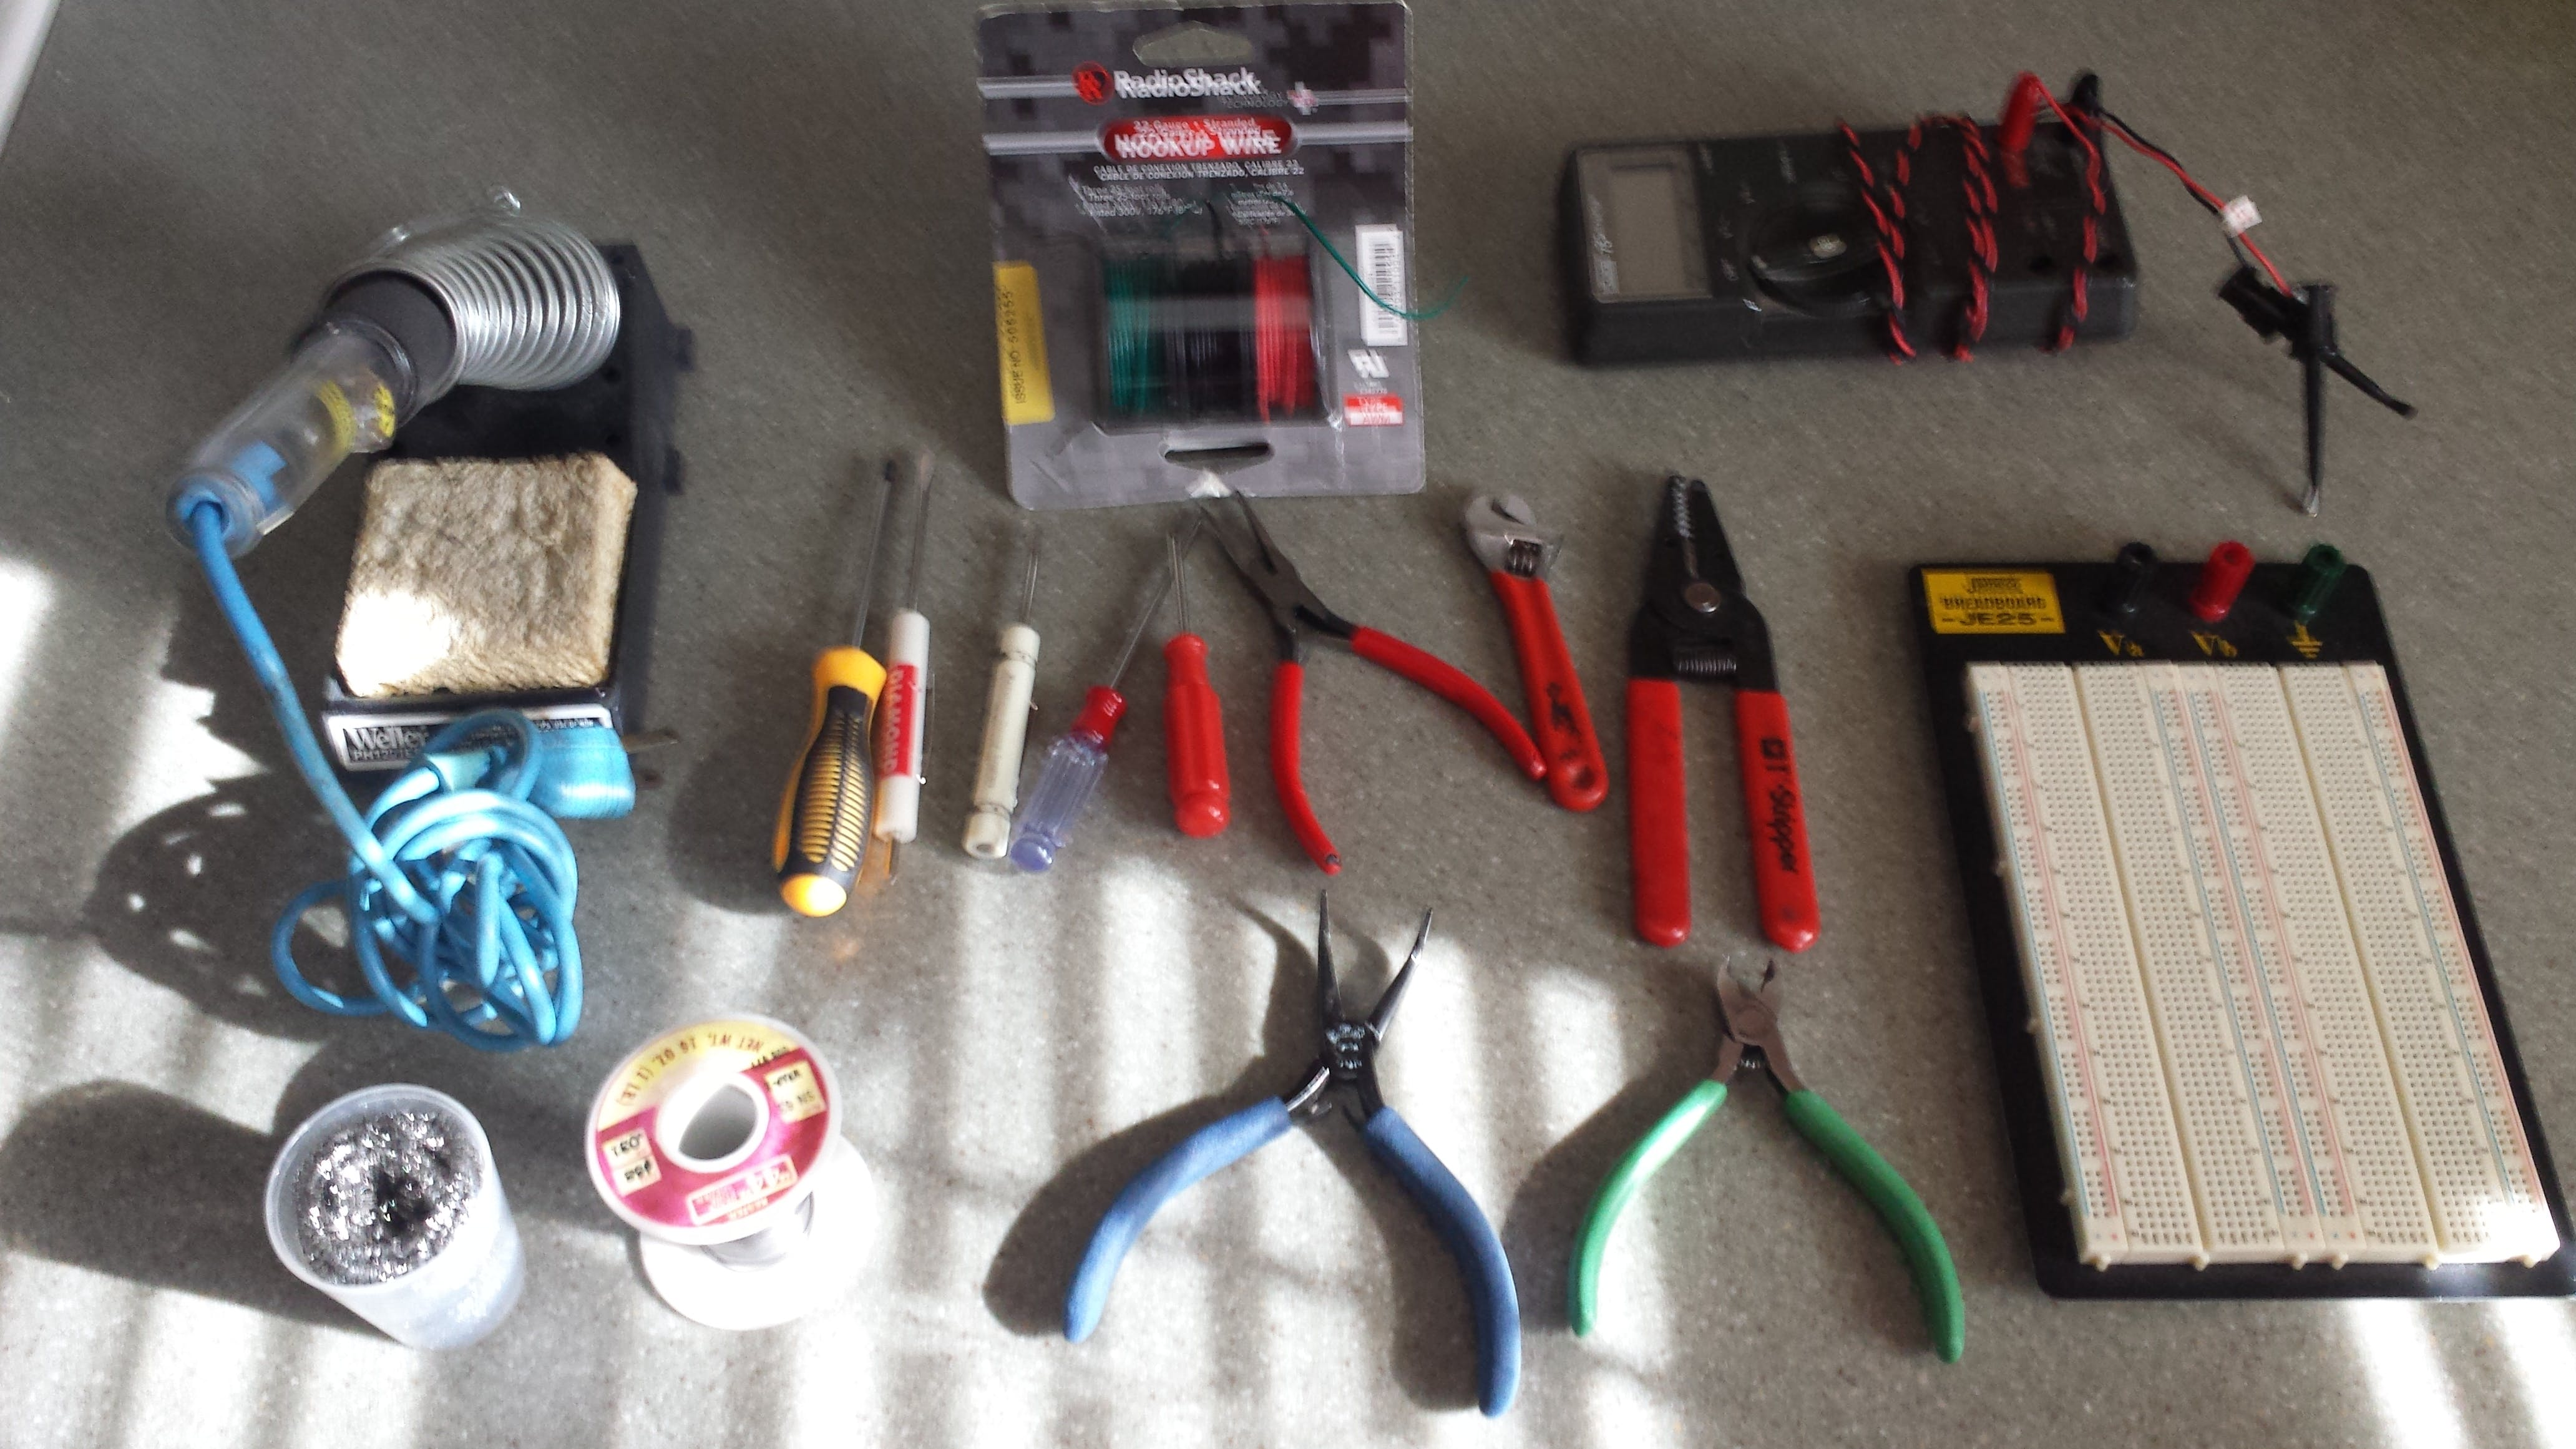 Typical assembly tools on hand